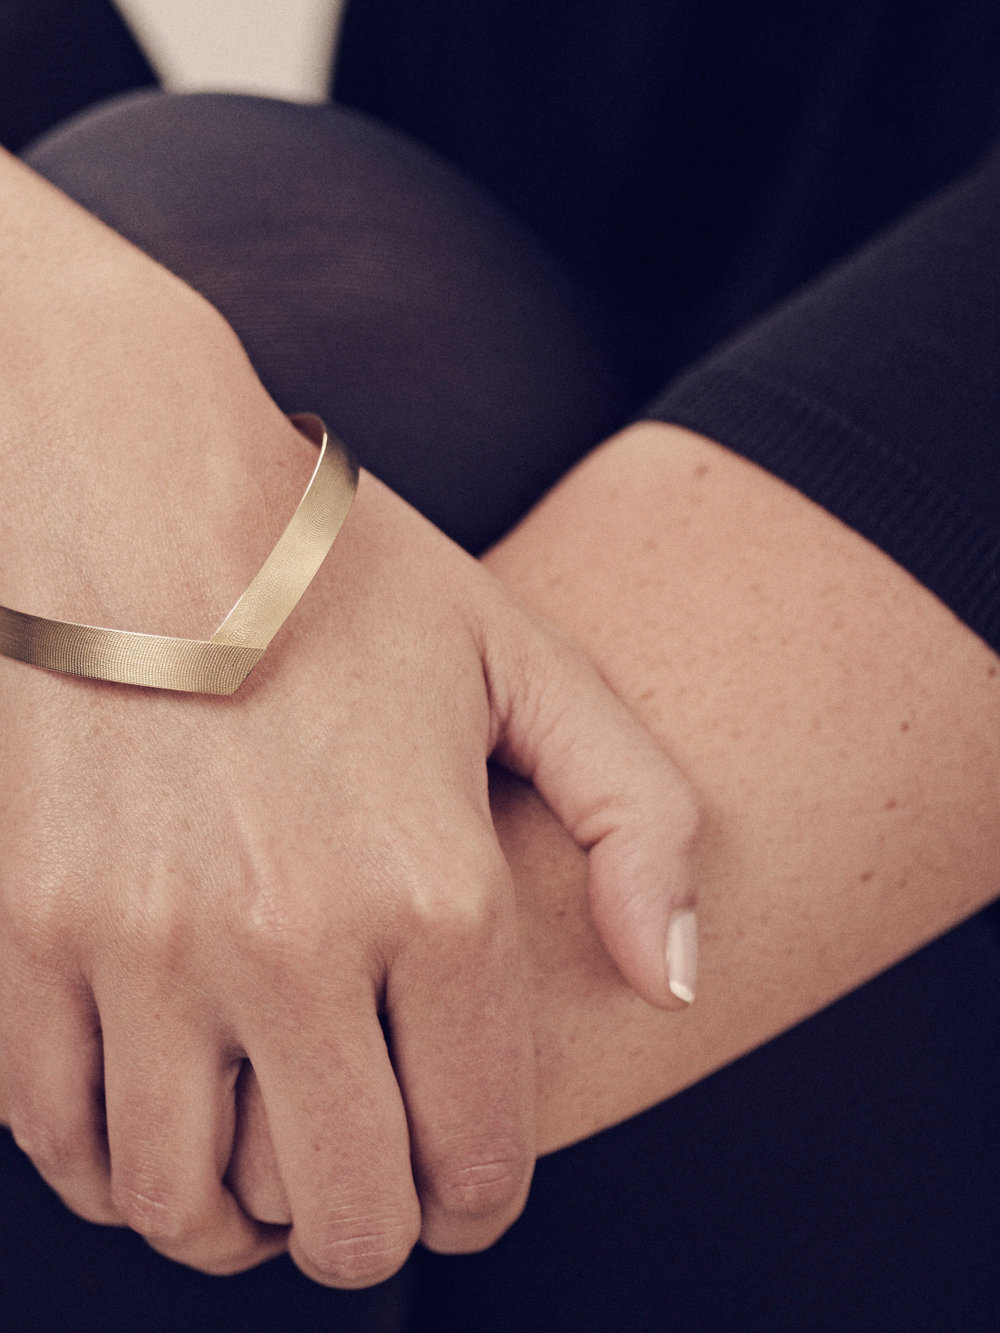 Band-Armreif, einfach in 750 Gold mit Seidenstruktur  Band-bracelet, single in 18kt gold with silk structure